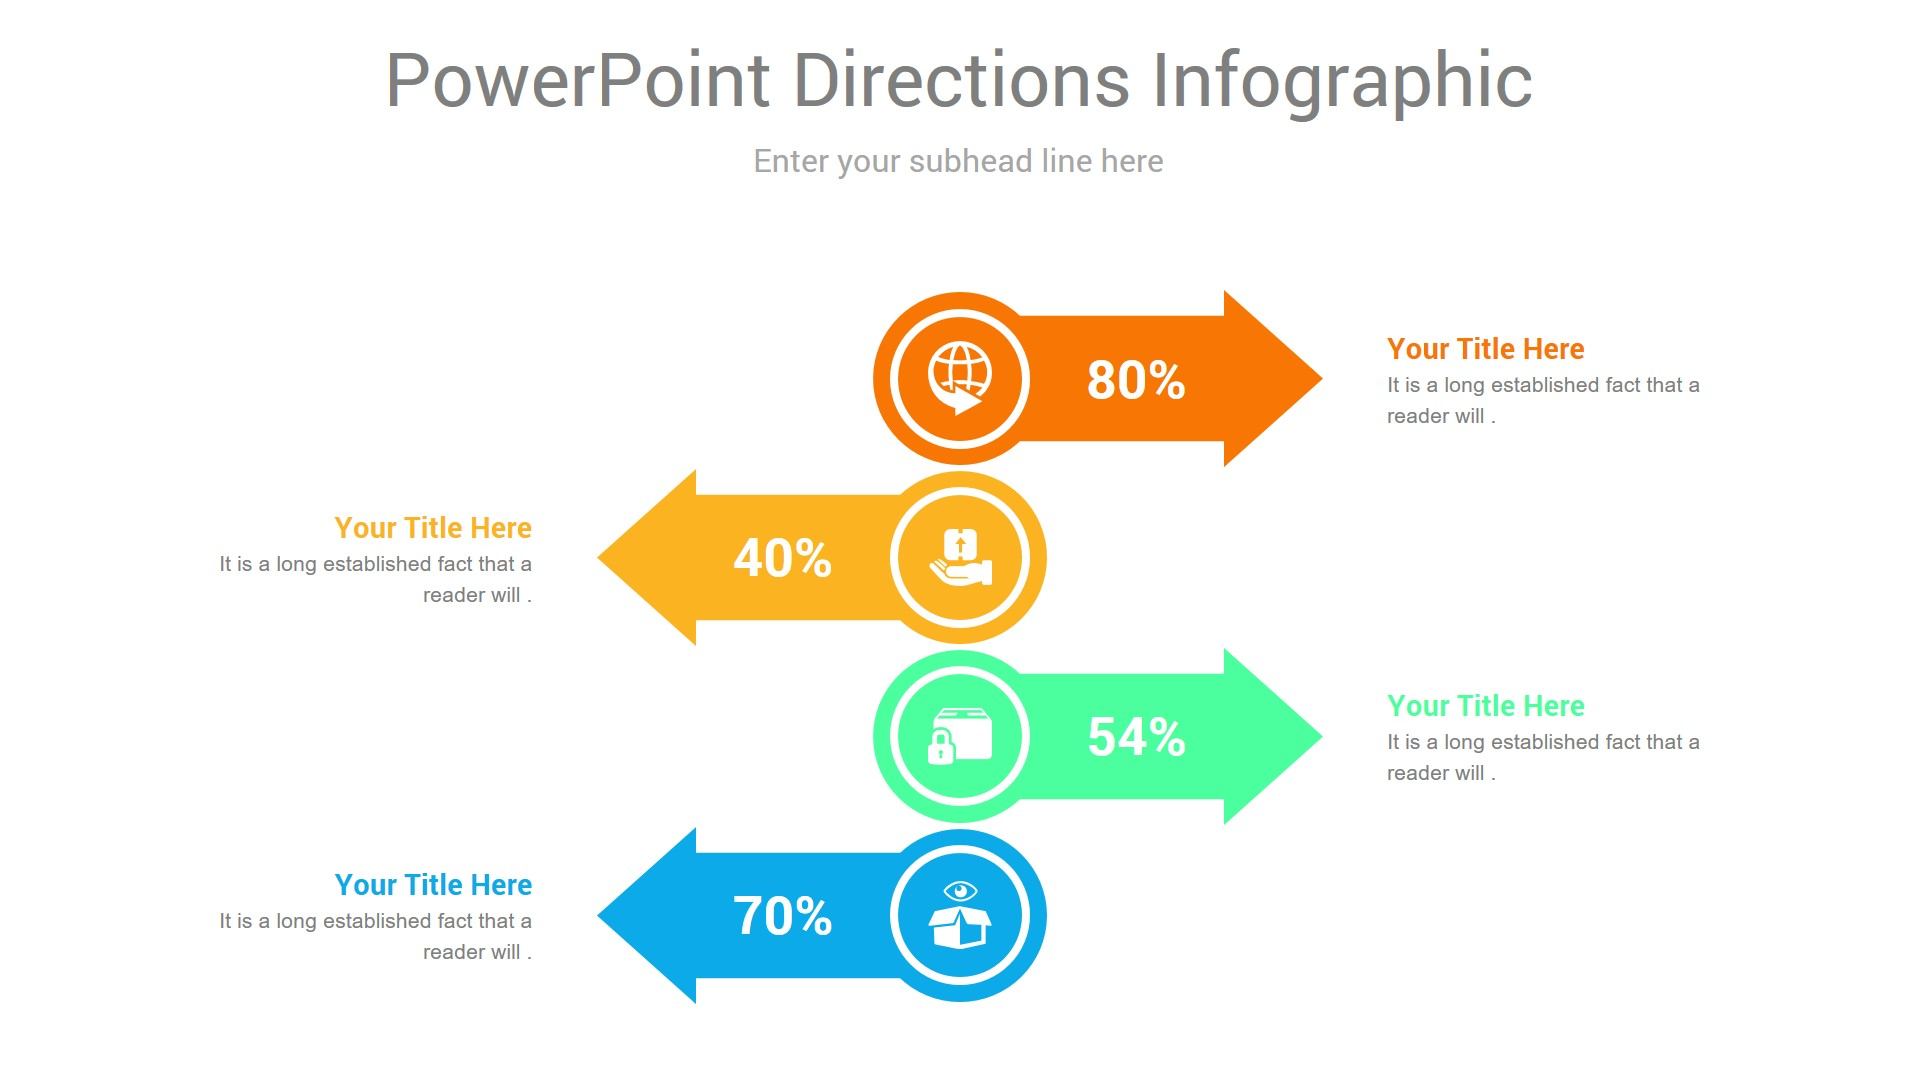 PowerPoint Directions Infographic